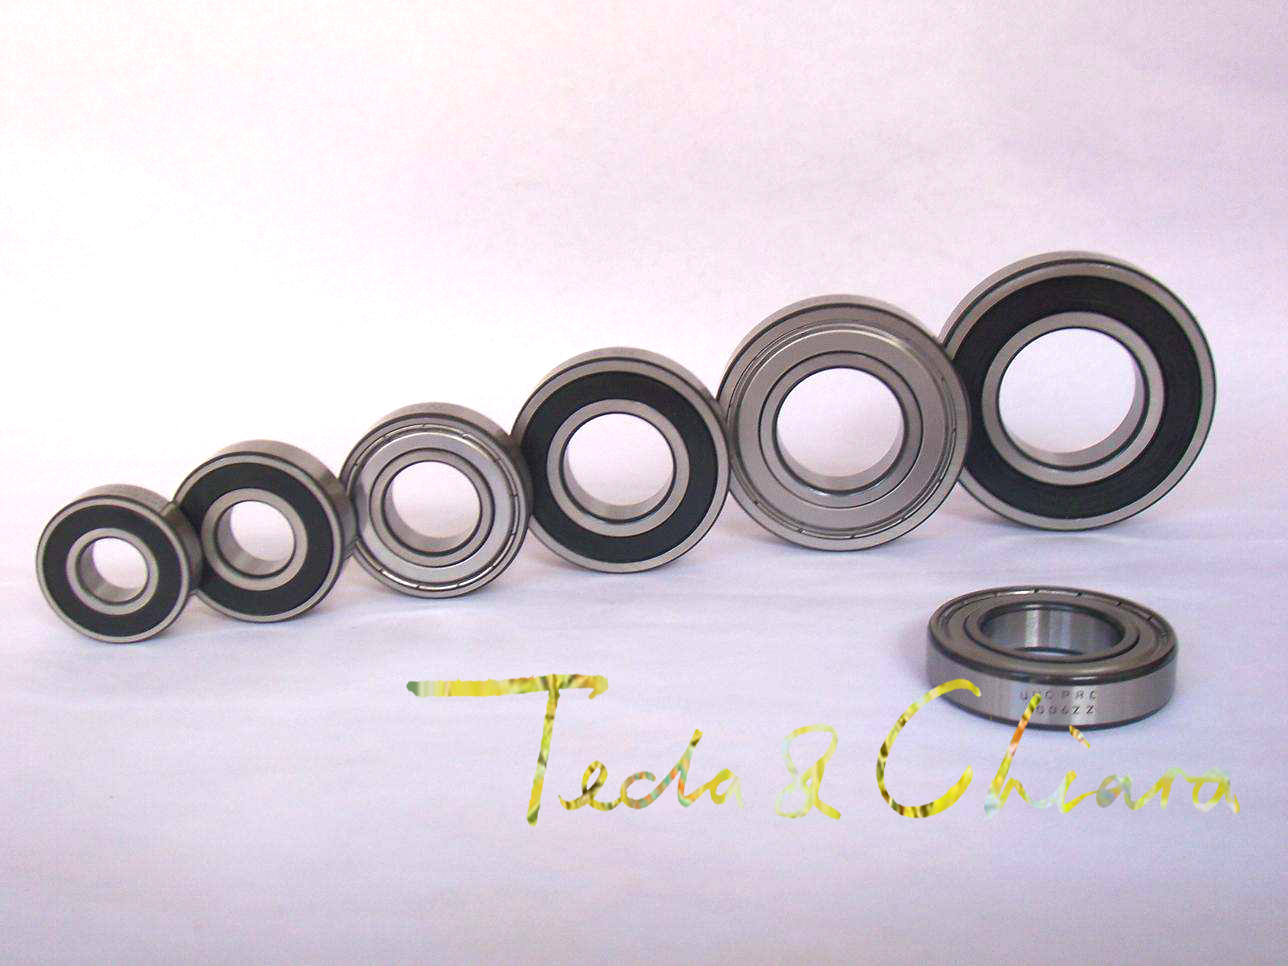 606 606ZZ 606RS 606-2Z 606Z 606-2RS ZZ RS RZ 2RZ Deep Groove Ball Bearings 6 x 17 x 6mm High Quality free shipping 25x47x12mm deep groove ball bearings 6005 zz 2z 6005zz bearing 6005zz 6005 2rs